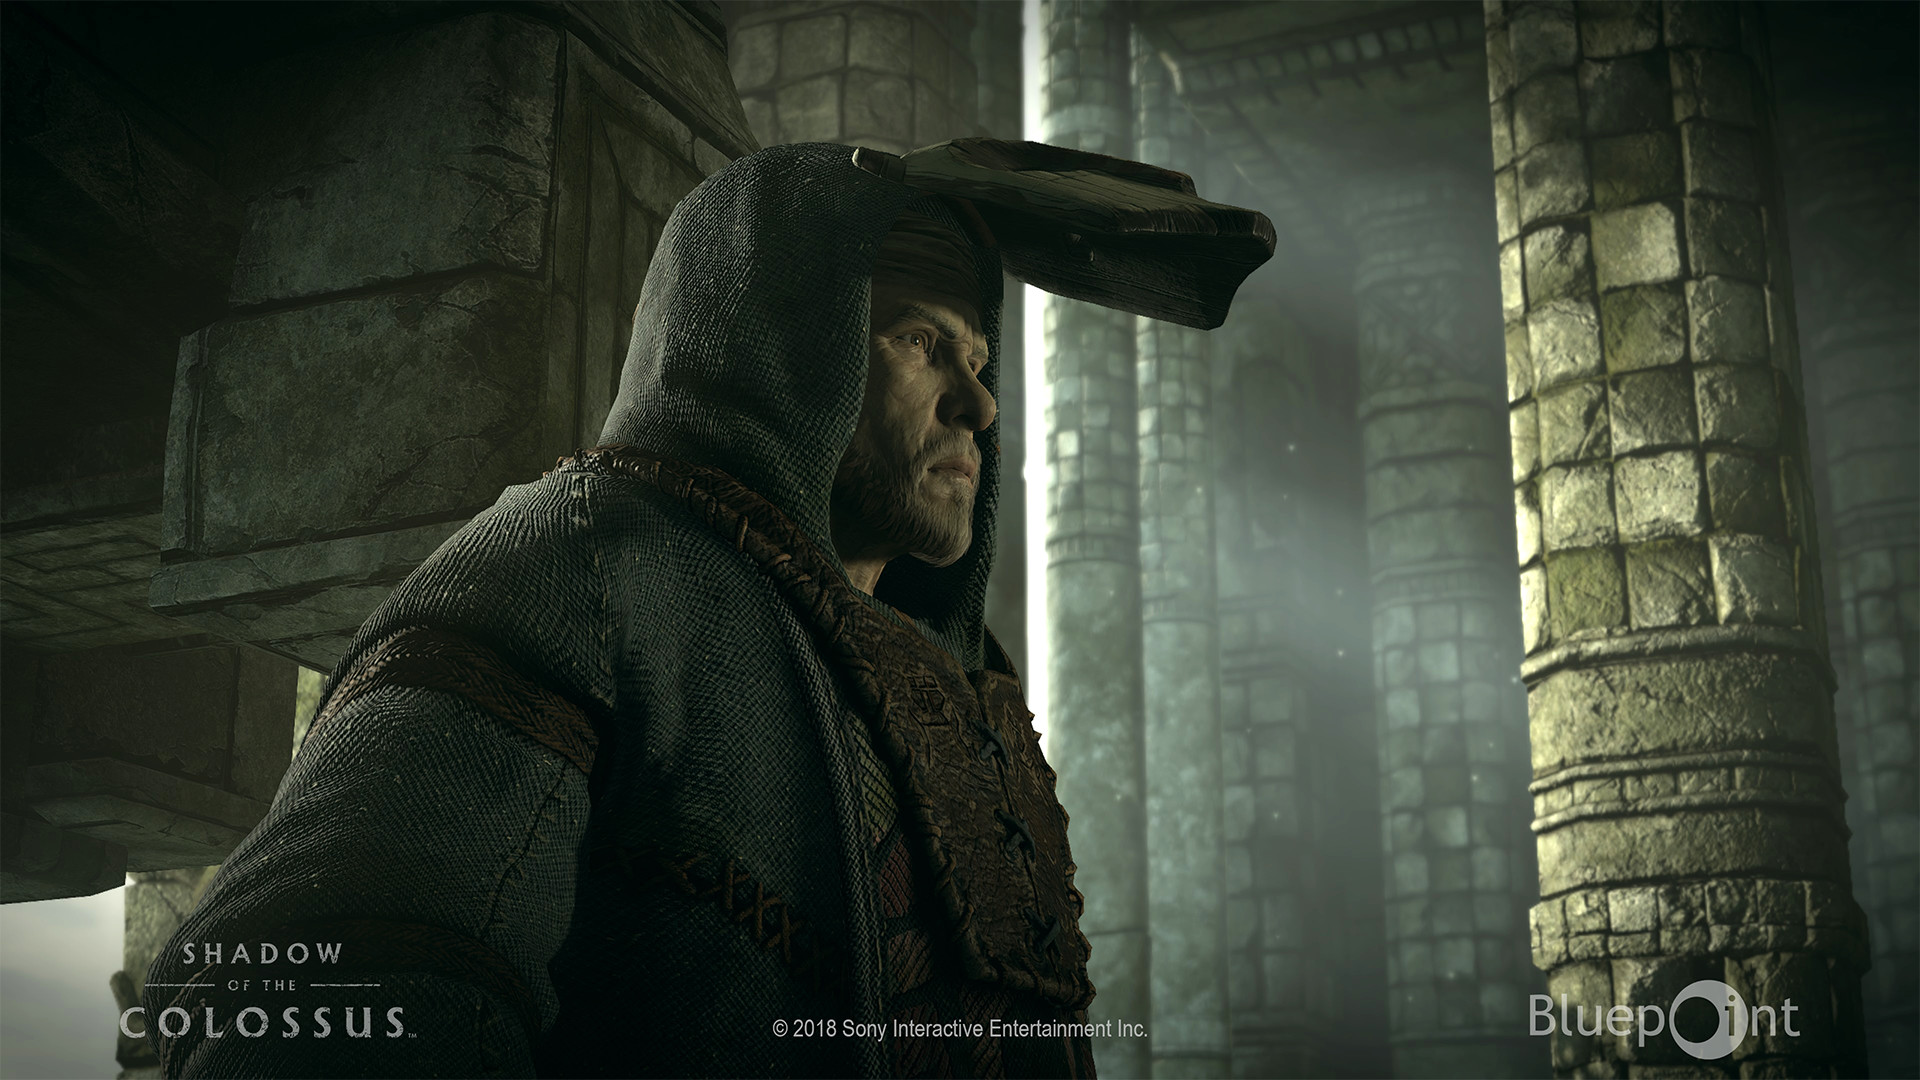 ArtStation - Shadow of the Colossus Ending Cinematic